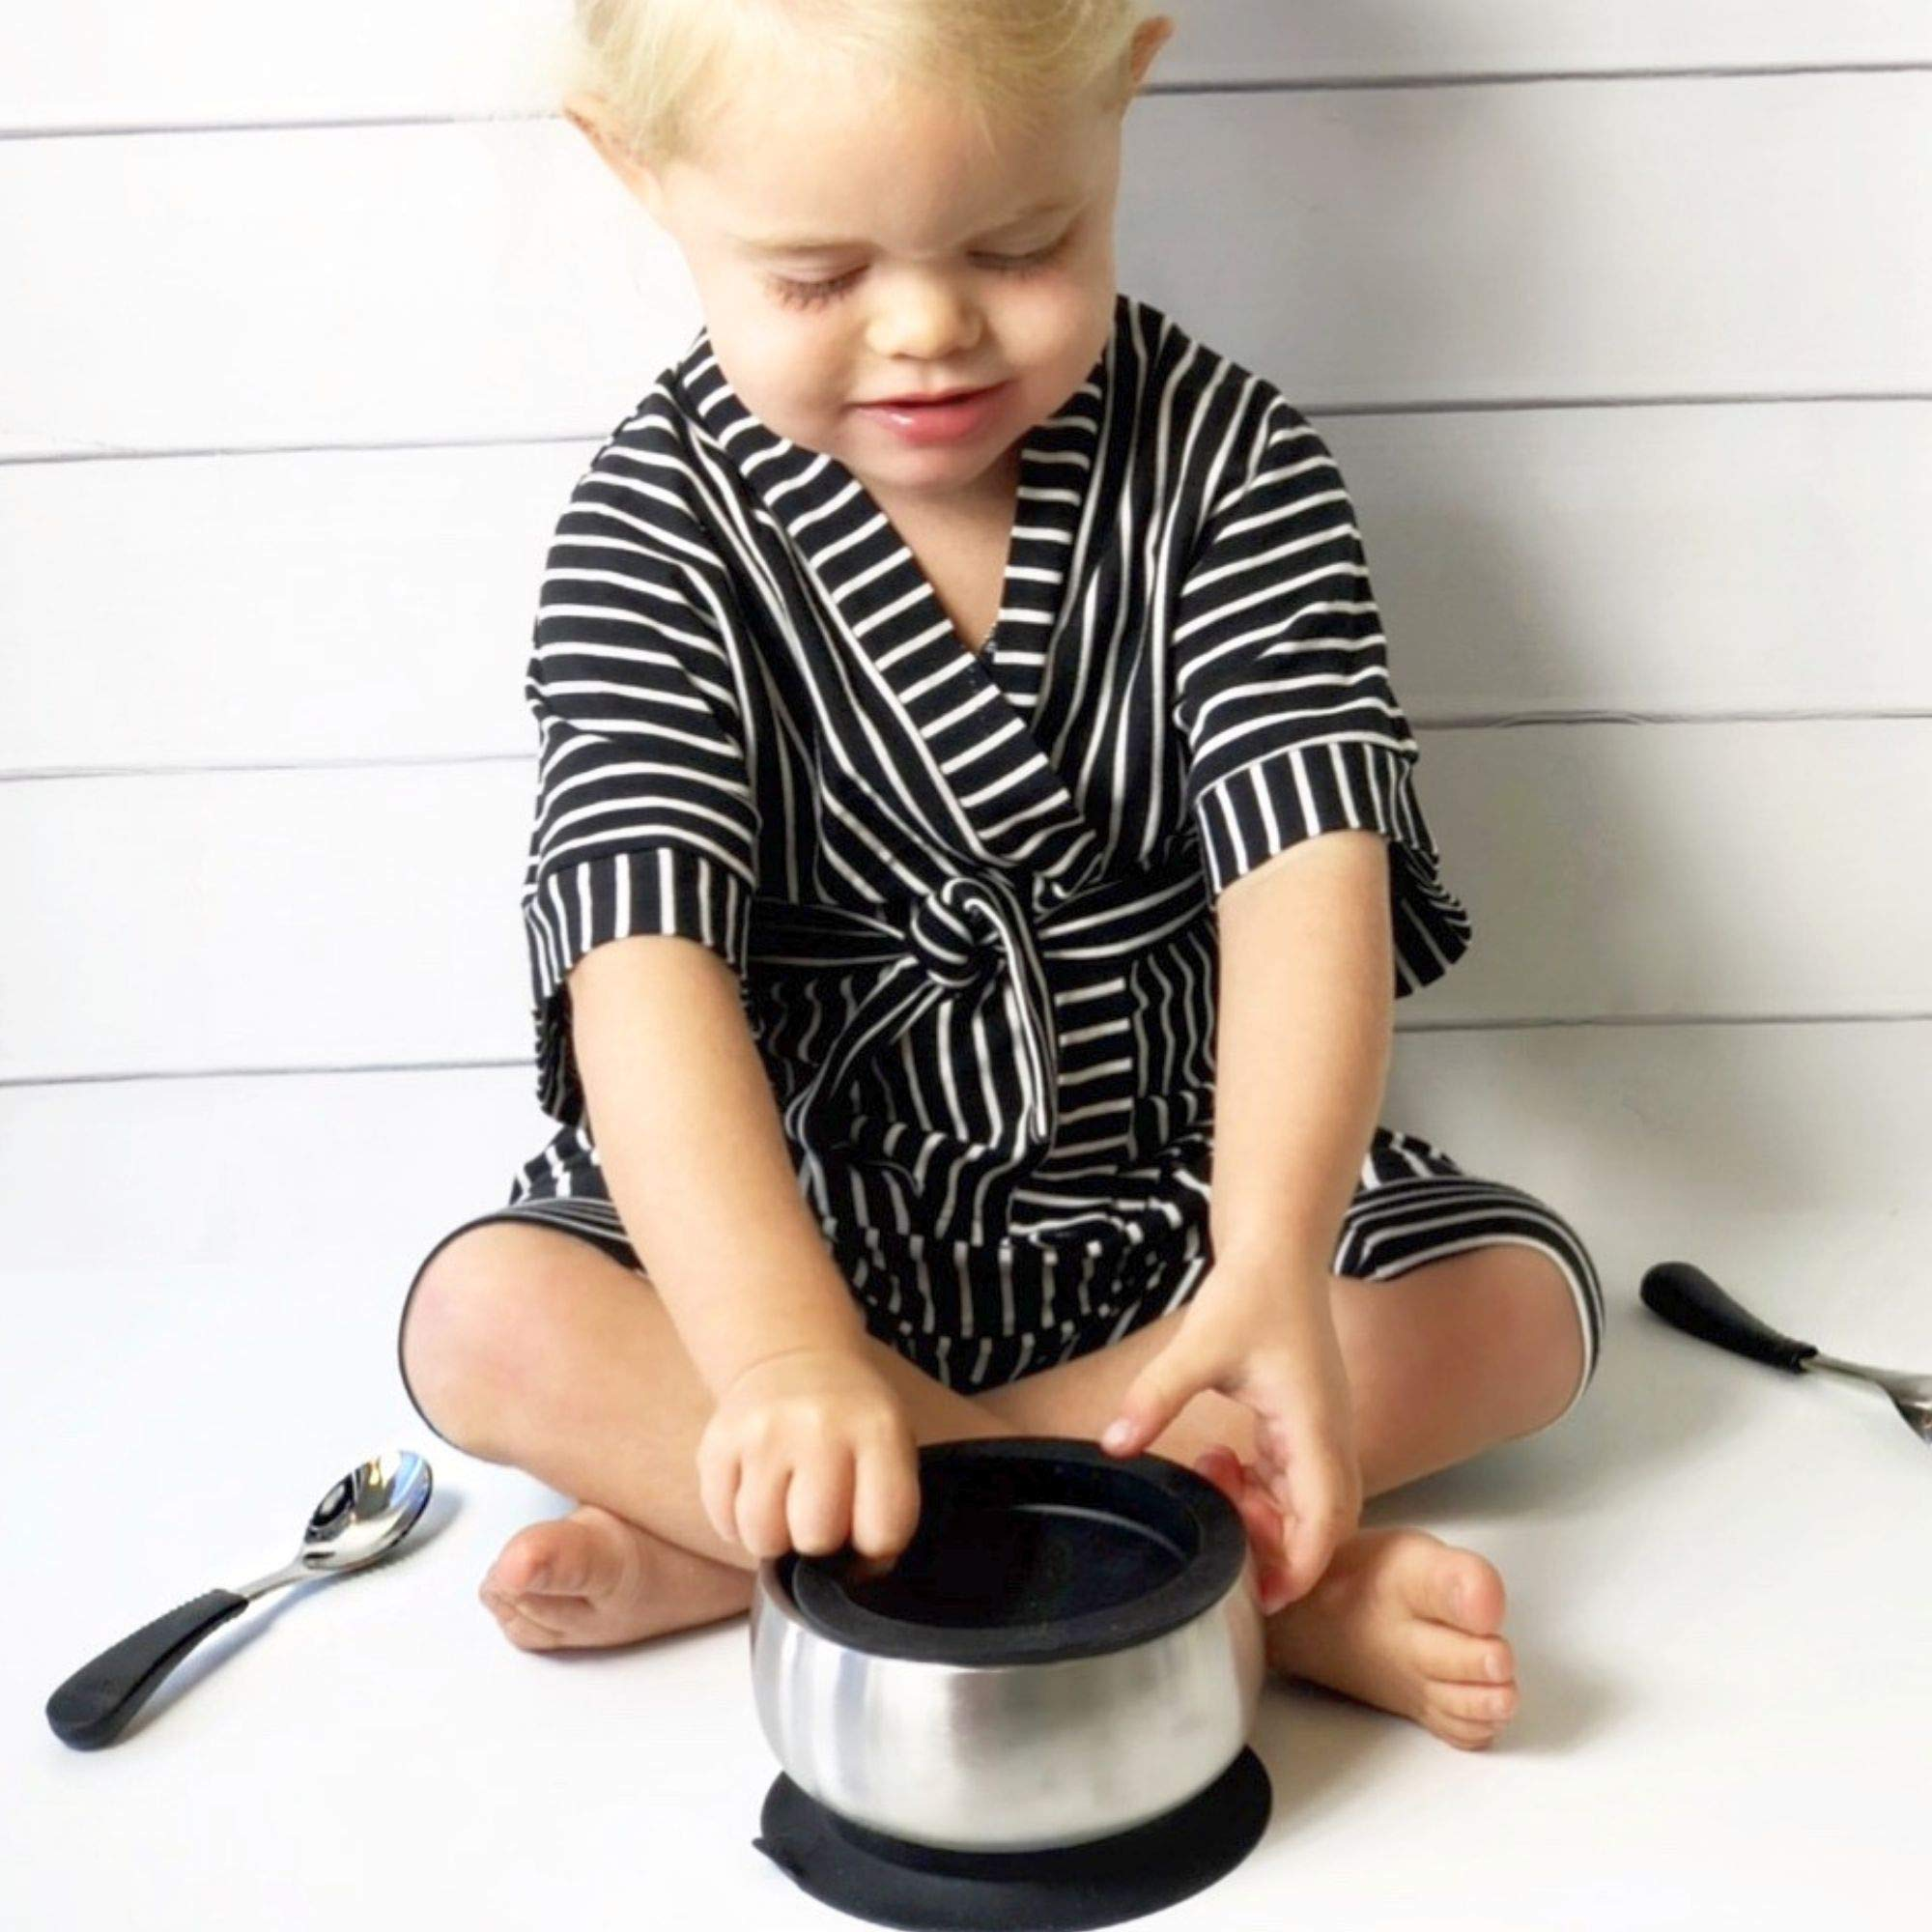 Avanchy Stainless Steel Baby, Toddler Feeding Divided Plate + Bowl + 2 Spoons Giftset. Infant, Kid or Child Gift. 18/8, BPA Free, BPS Free, Lead Free and Phthalate Free. Blue by Avanchy (Image #4)